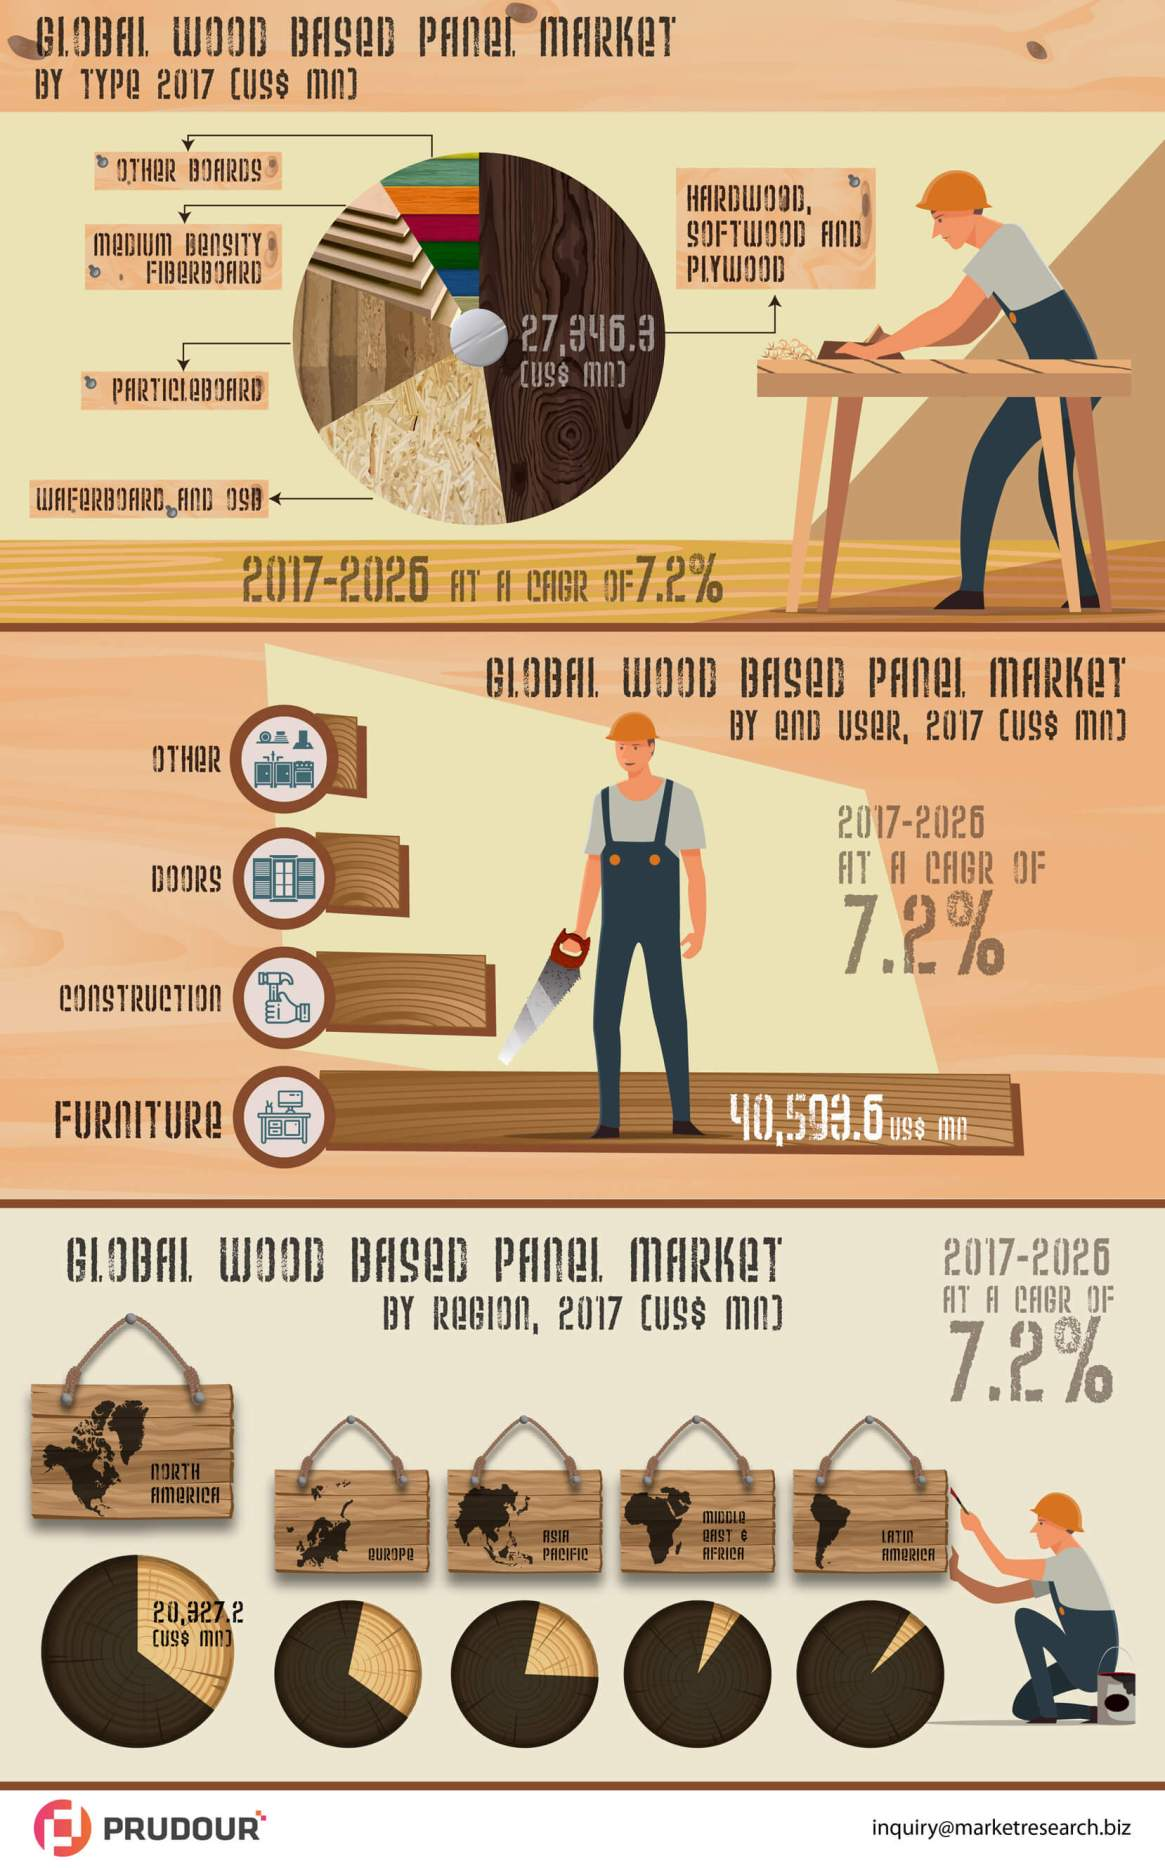 Wood Based Panel Market Witnessed CAGR of 7.2% By 2026